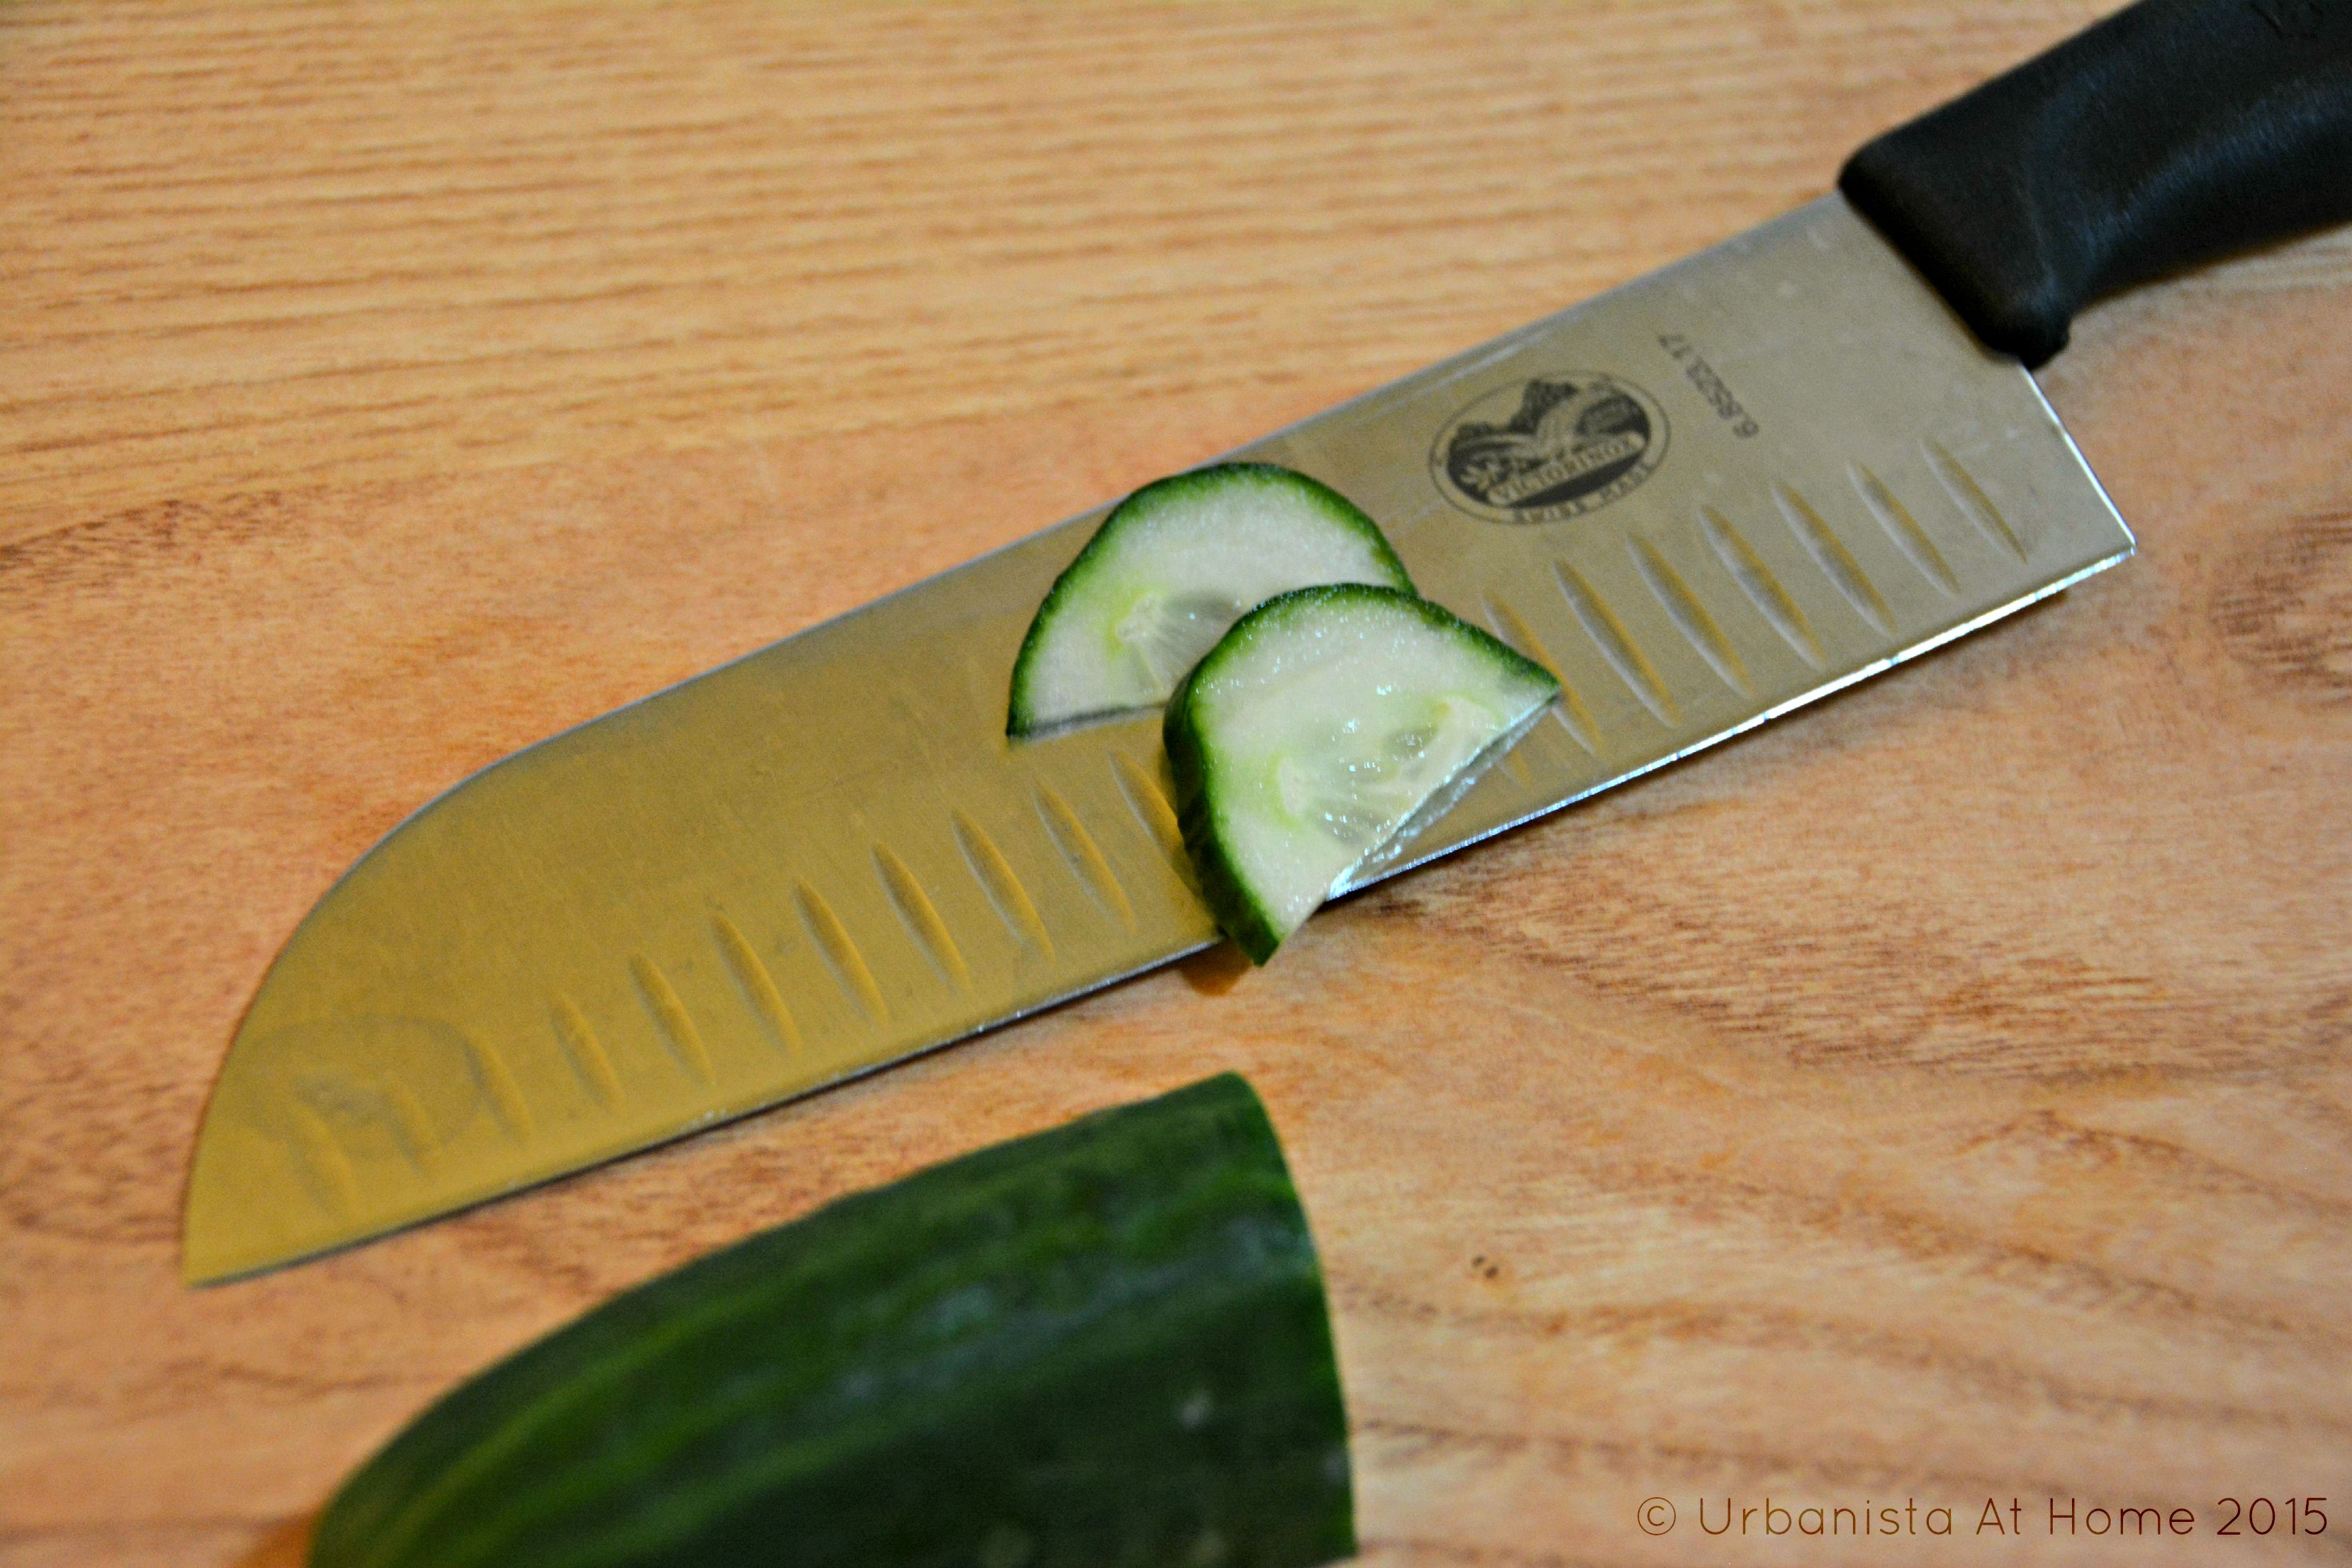 UrbanistaAtHome.com - Top 5 Kitchen Knives To Take Your Home Cooking To The Next Level 8